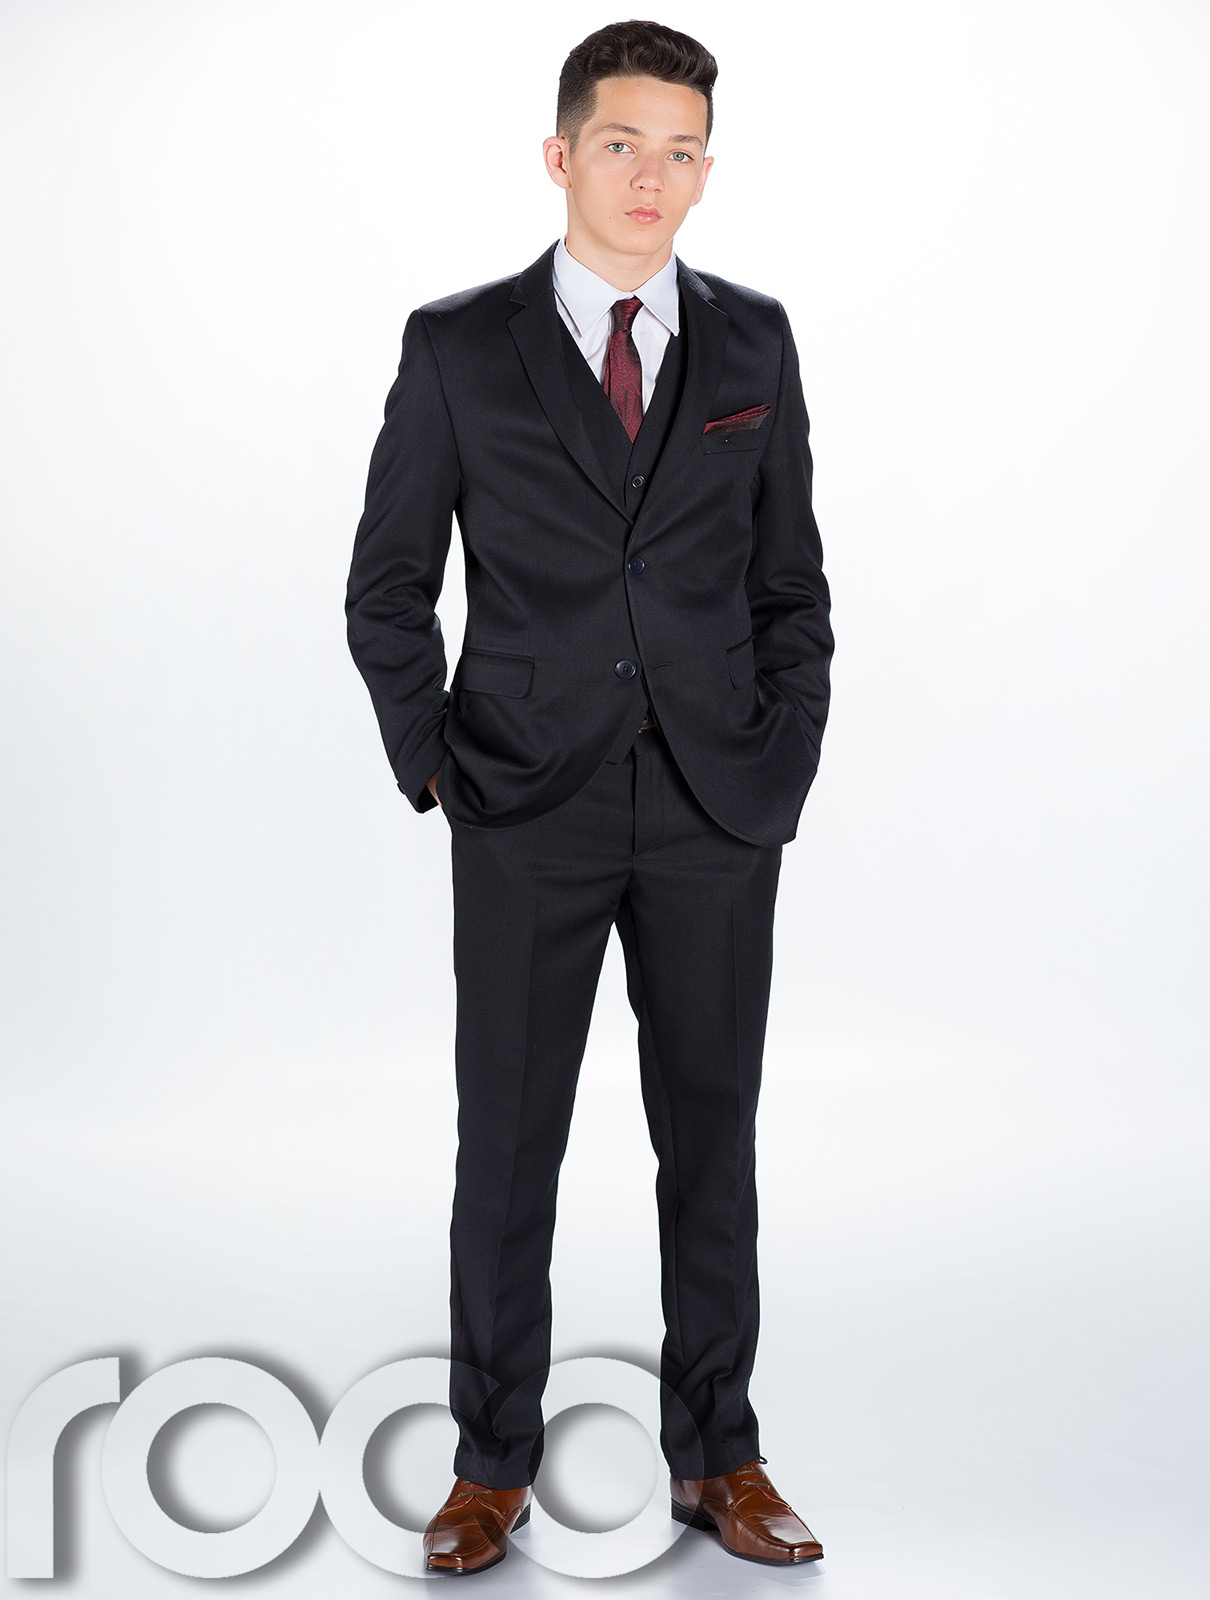 Boys Wedding Suit In Navy, Page Boy Suits, Prom Suits | eBay